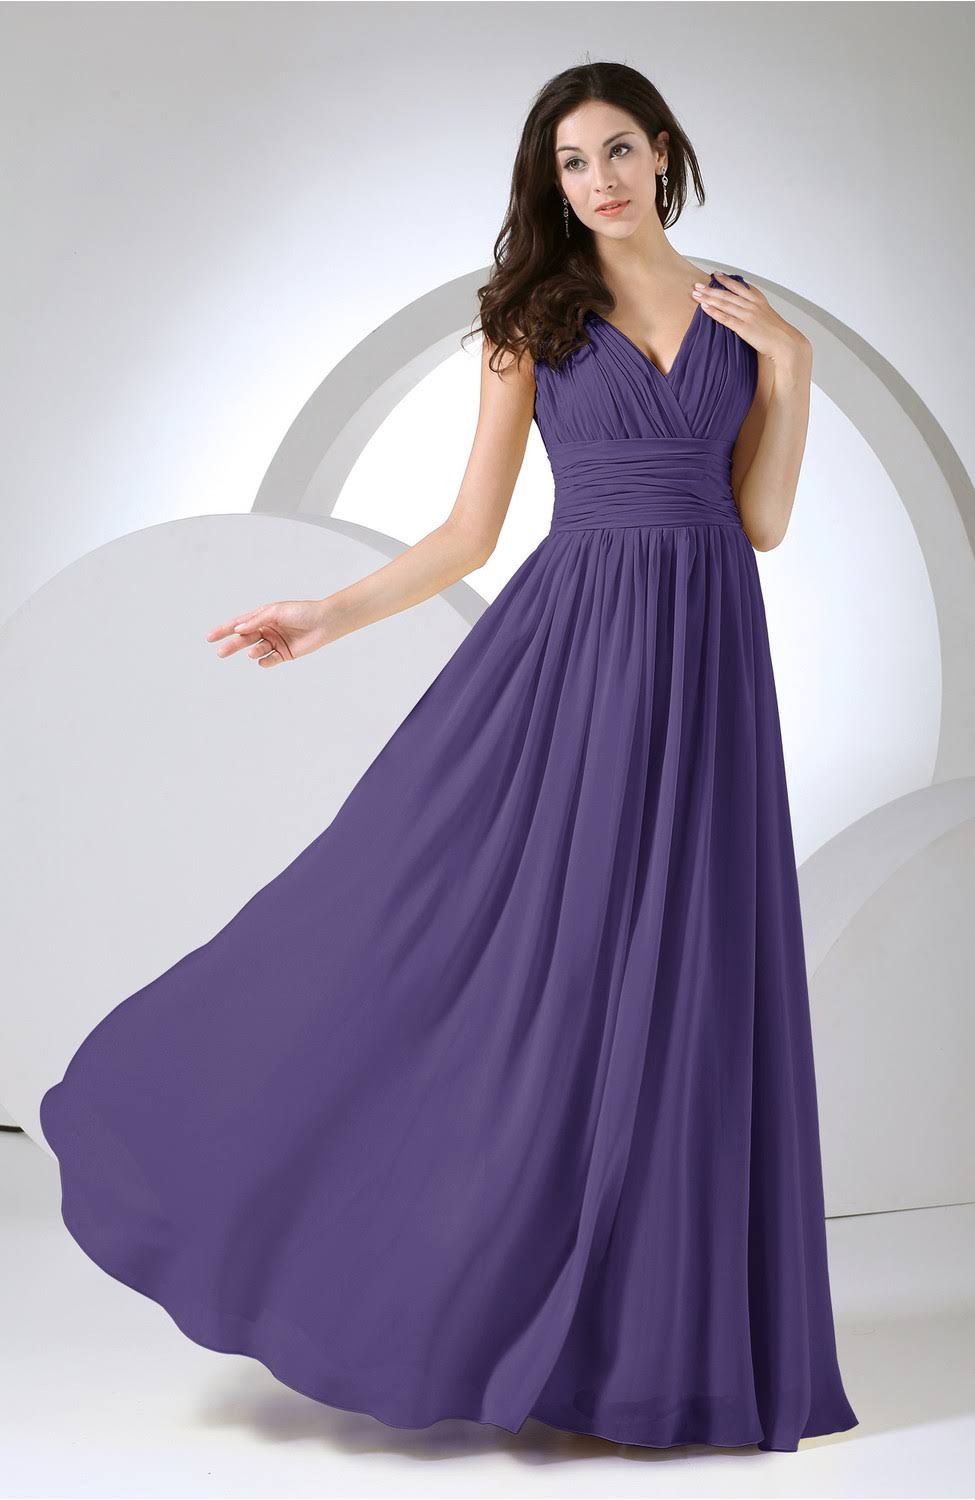 Royal purple modest prom homecoming dress bridesmaid floor length royal purple modest prom homecoming dress bridesmaid floor length full figure formal women cheap ombrellifo Gallery